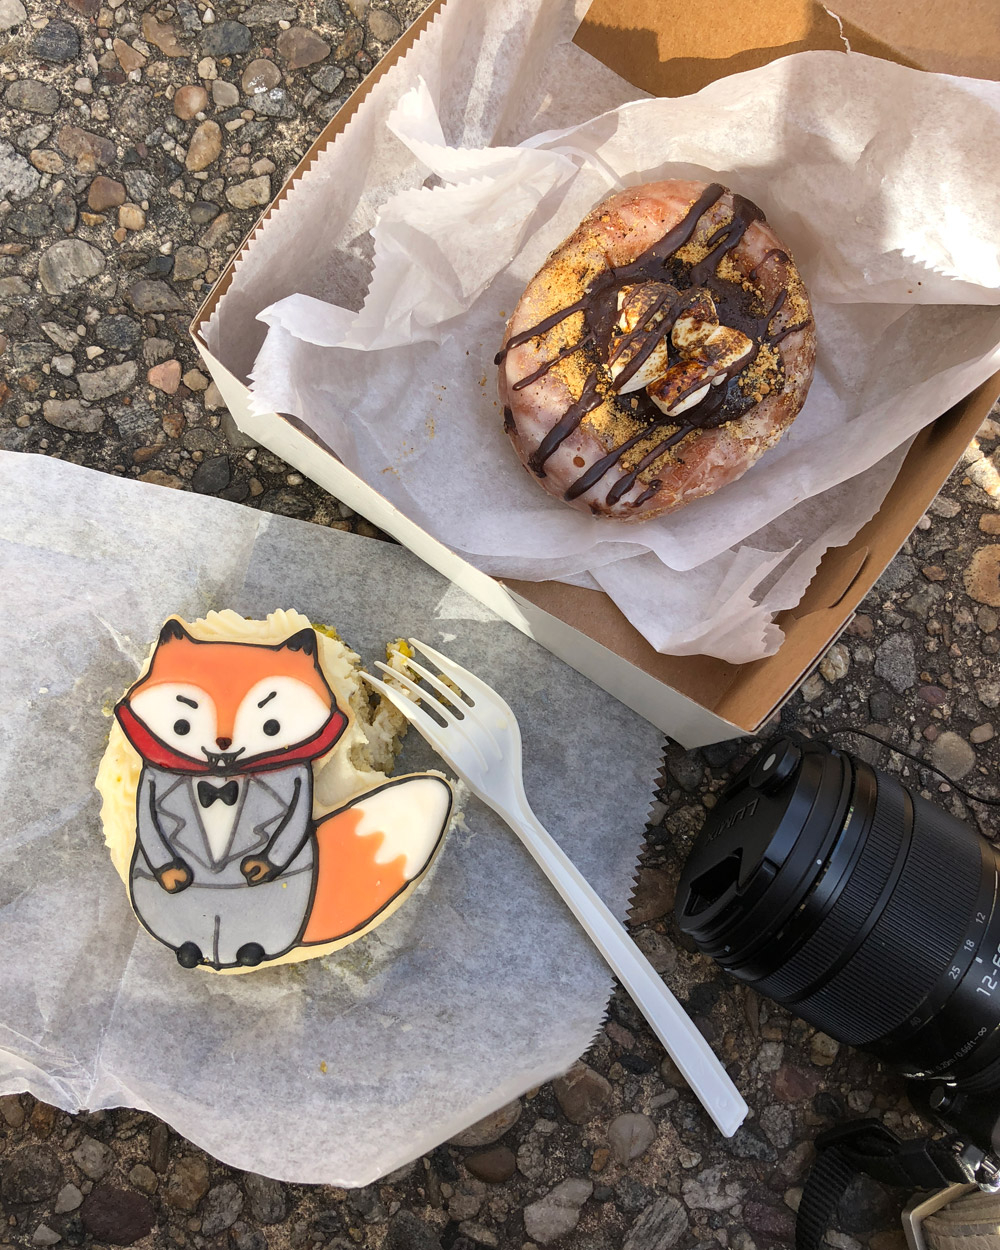 The Cinnamon Snail - Pistachio Vampire Fox Cake, Chocolate Ganache Stuffed S'mores Donut